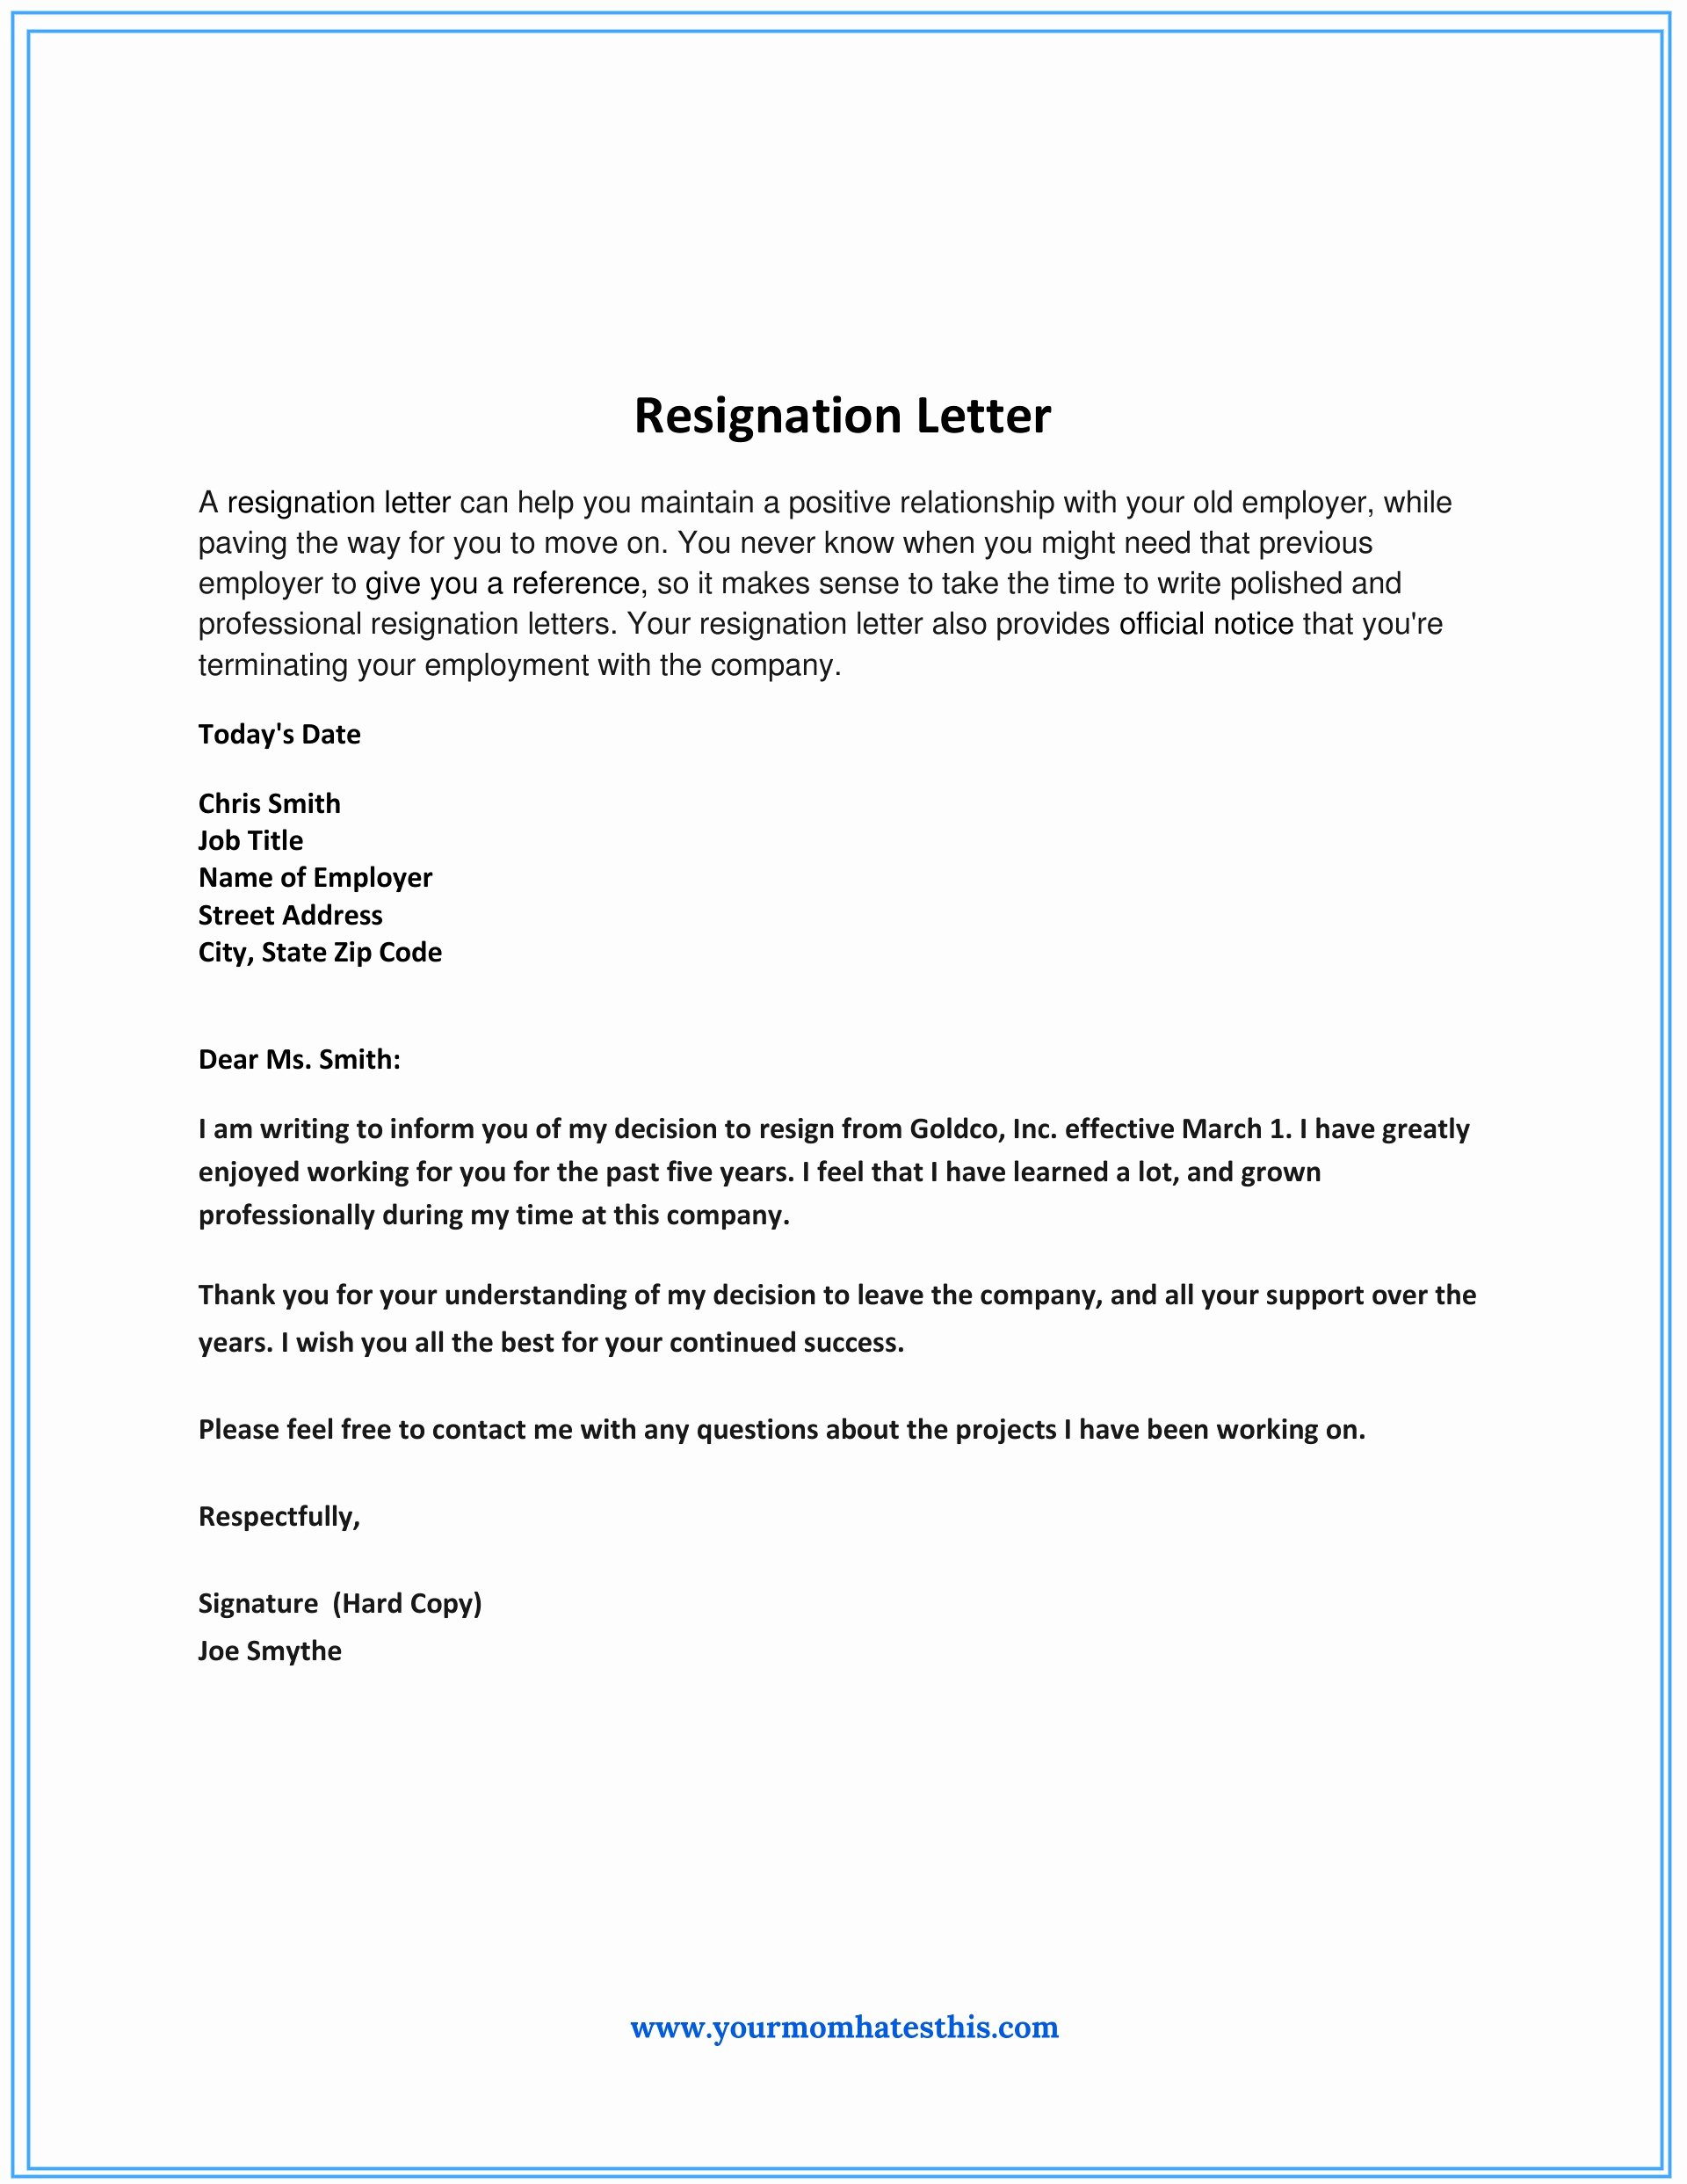 Letter Of Resignation From Job Lovely Dos and Don'ts for A Resignation Letter